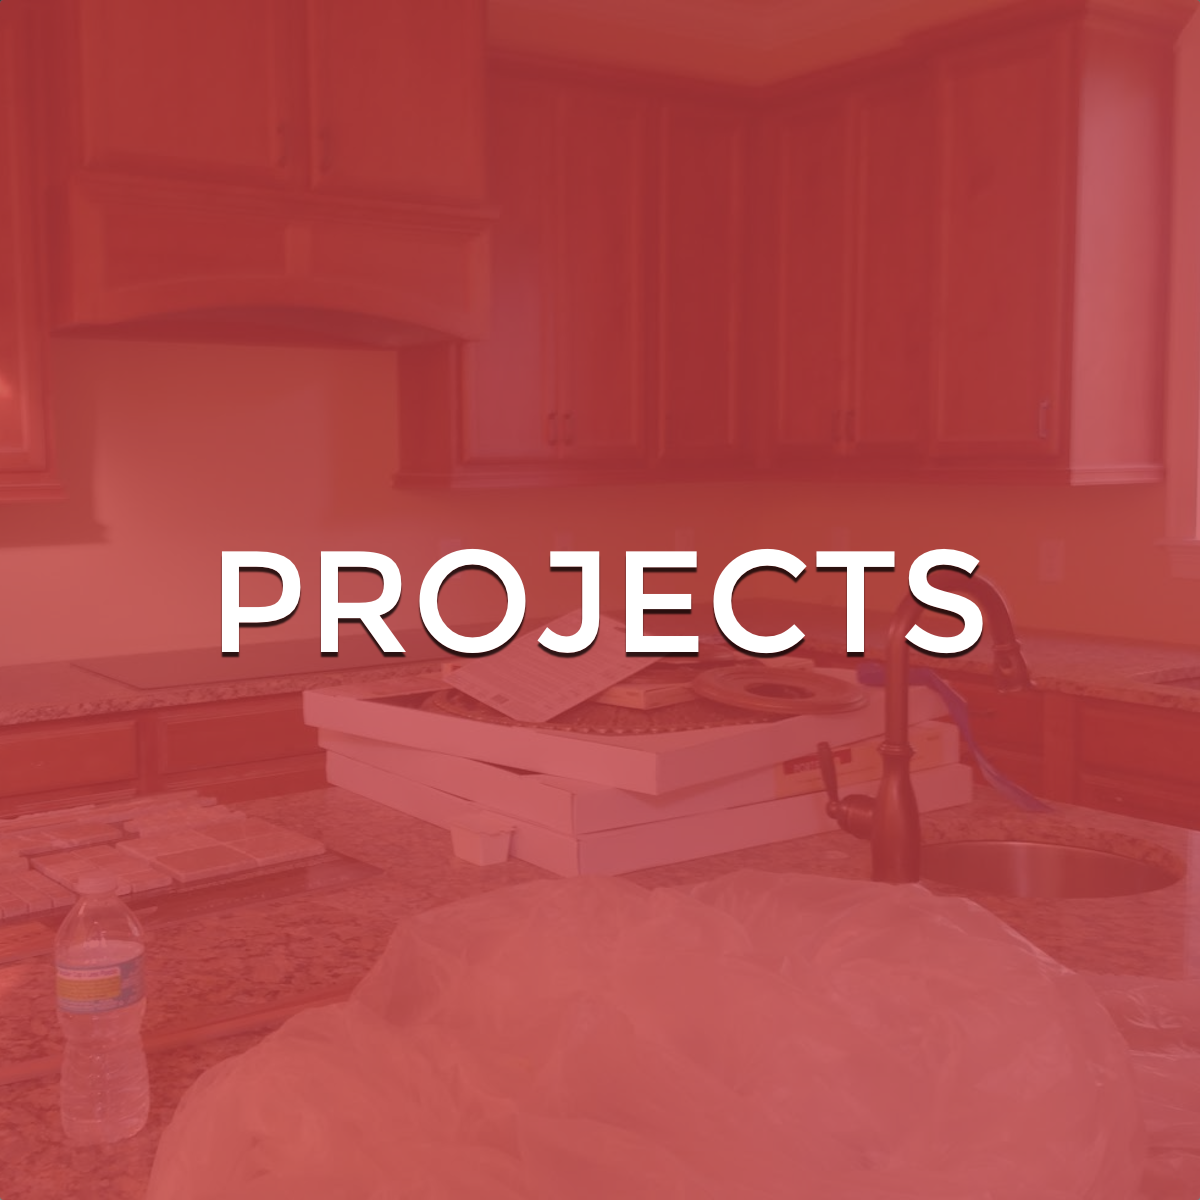 Projects Box.png